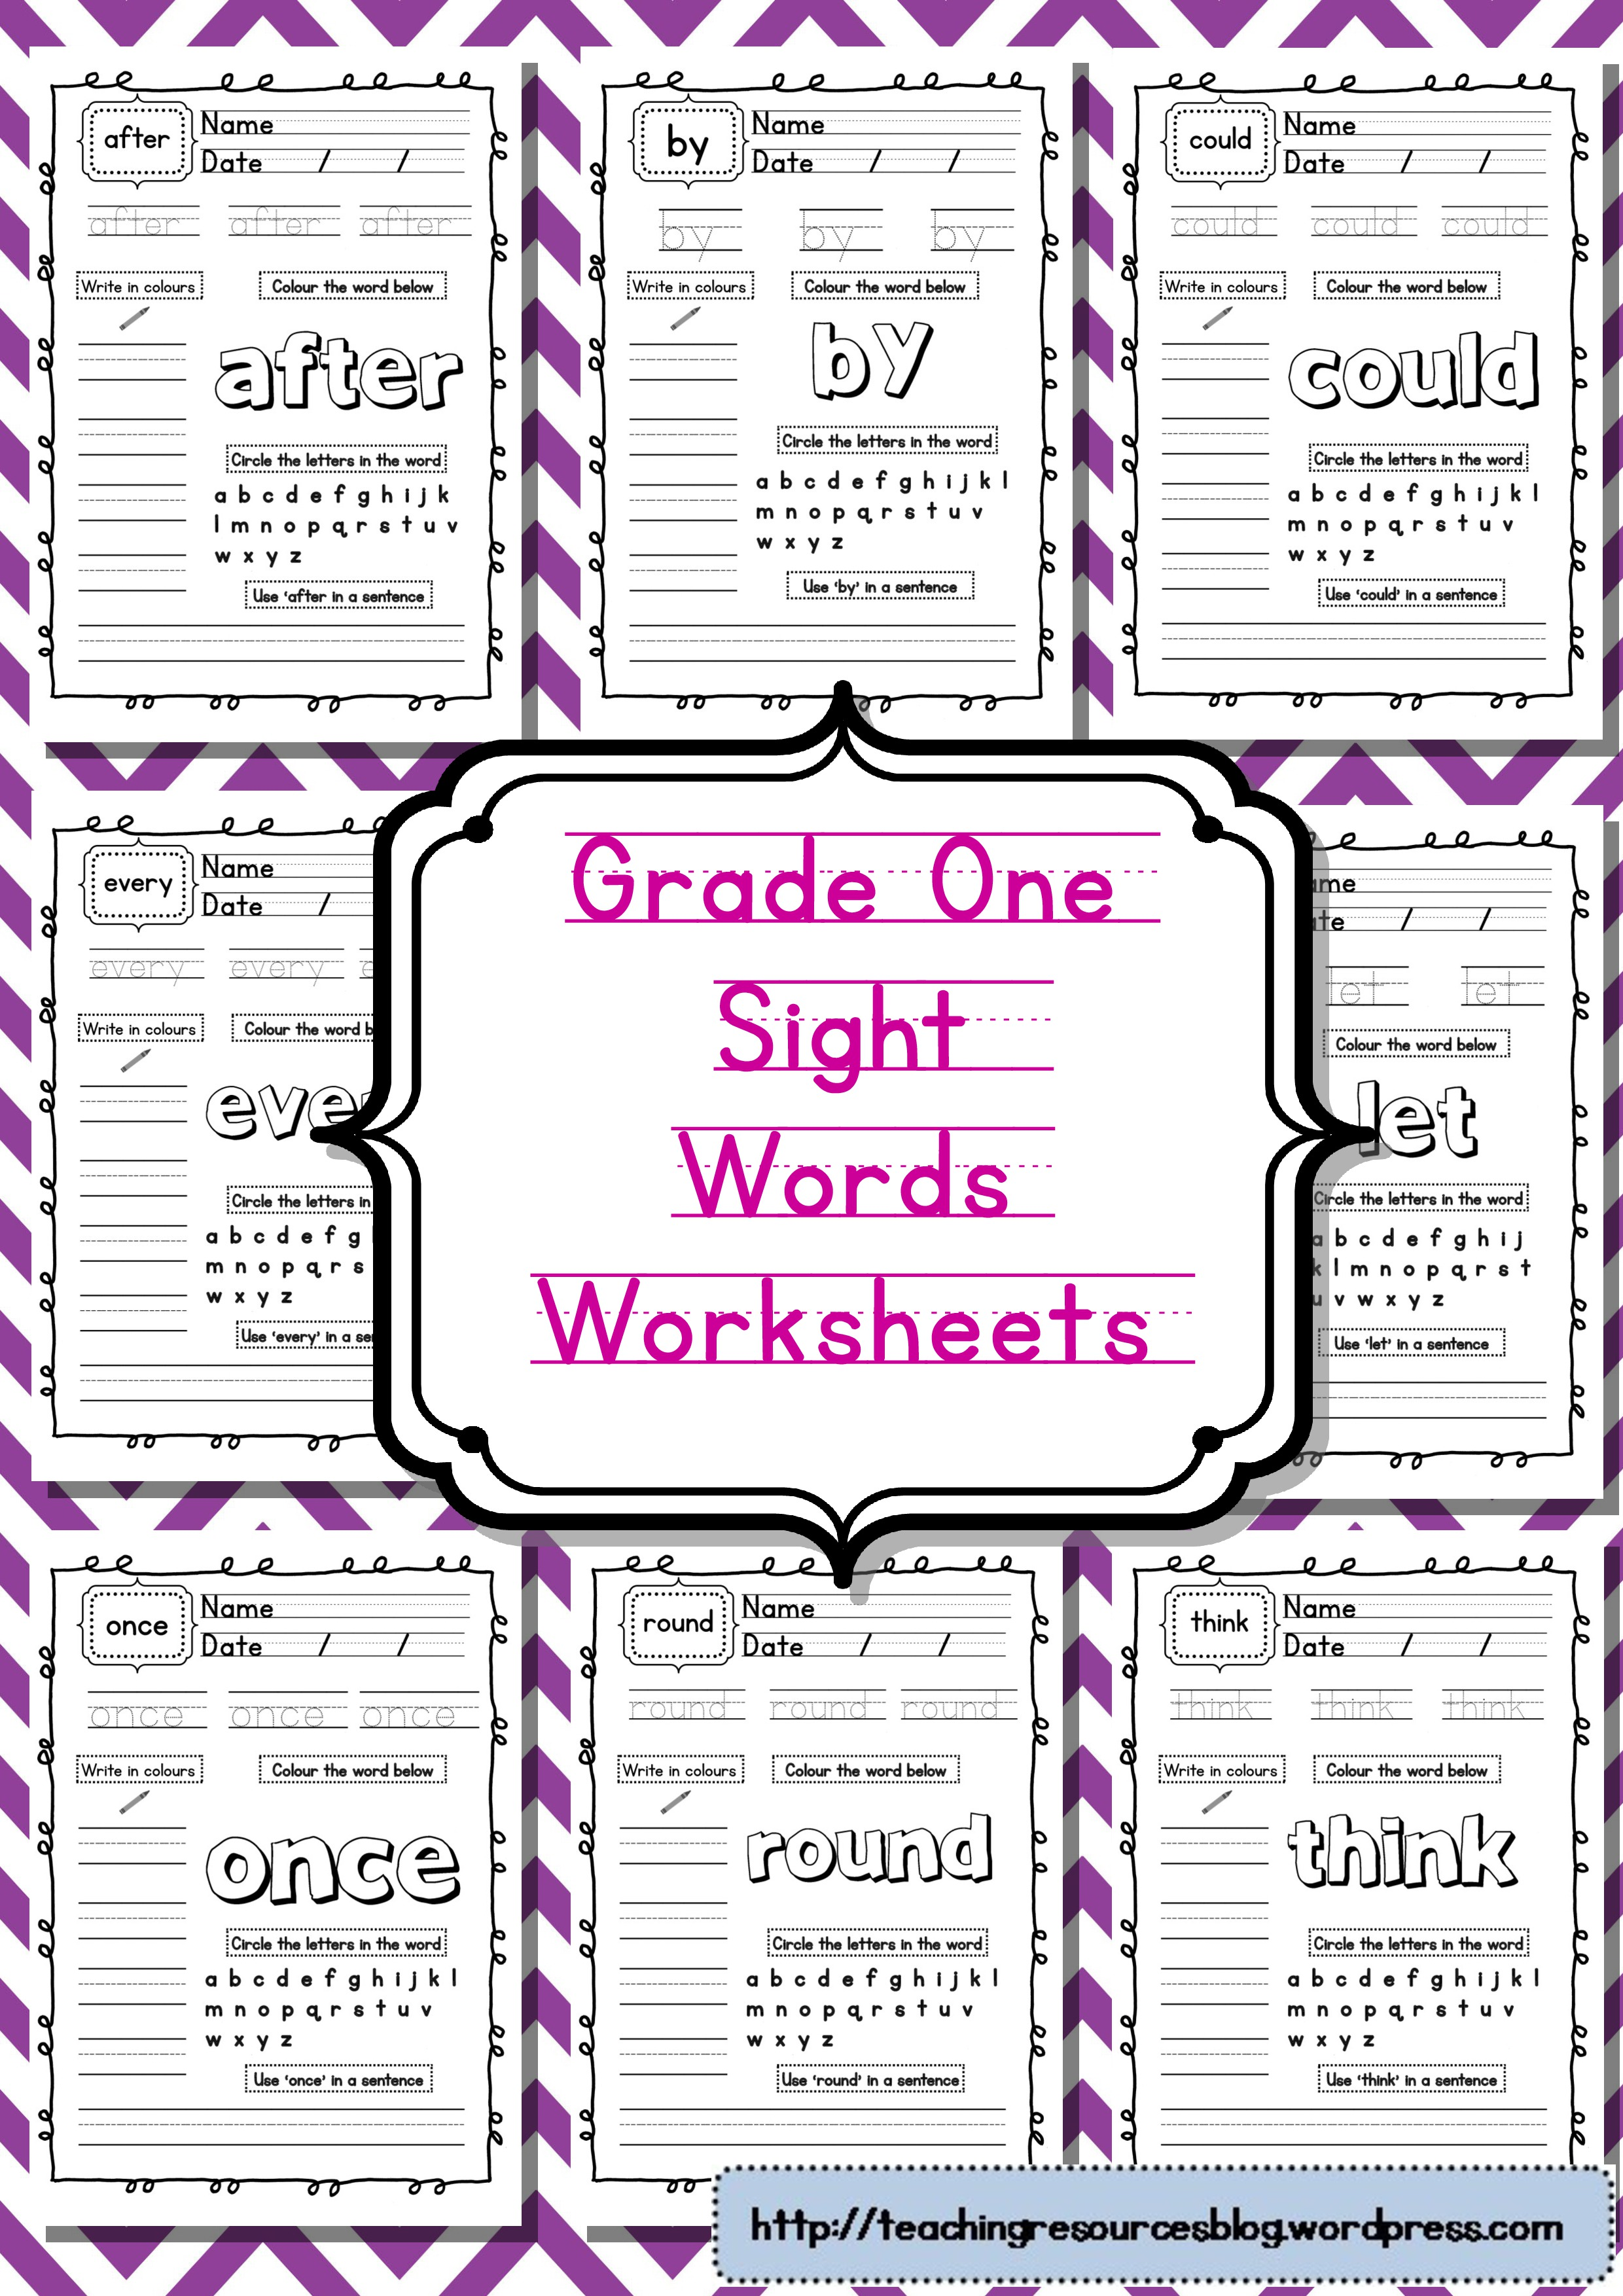 Grade One Sight Words Worksheets